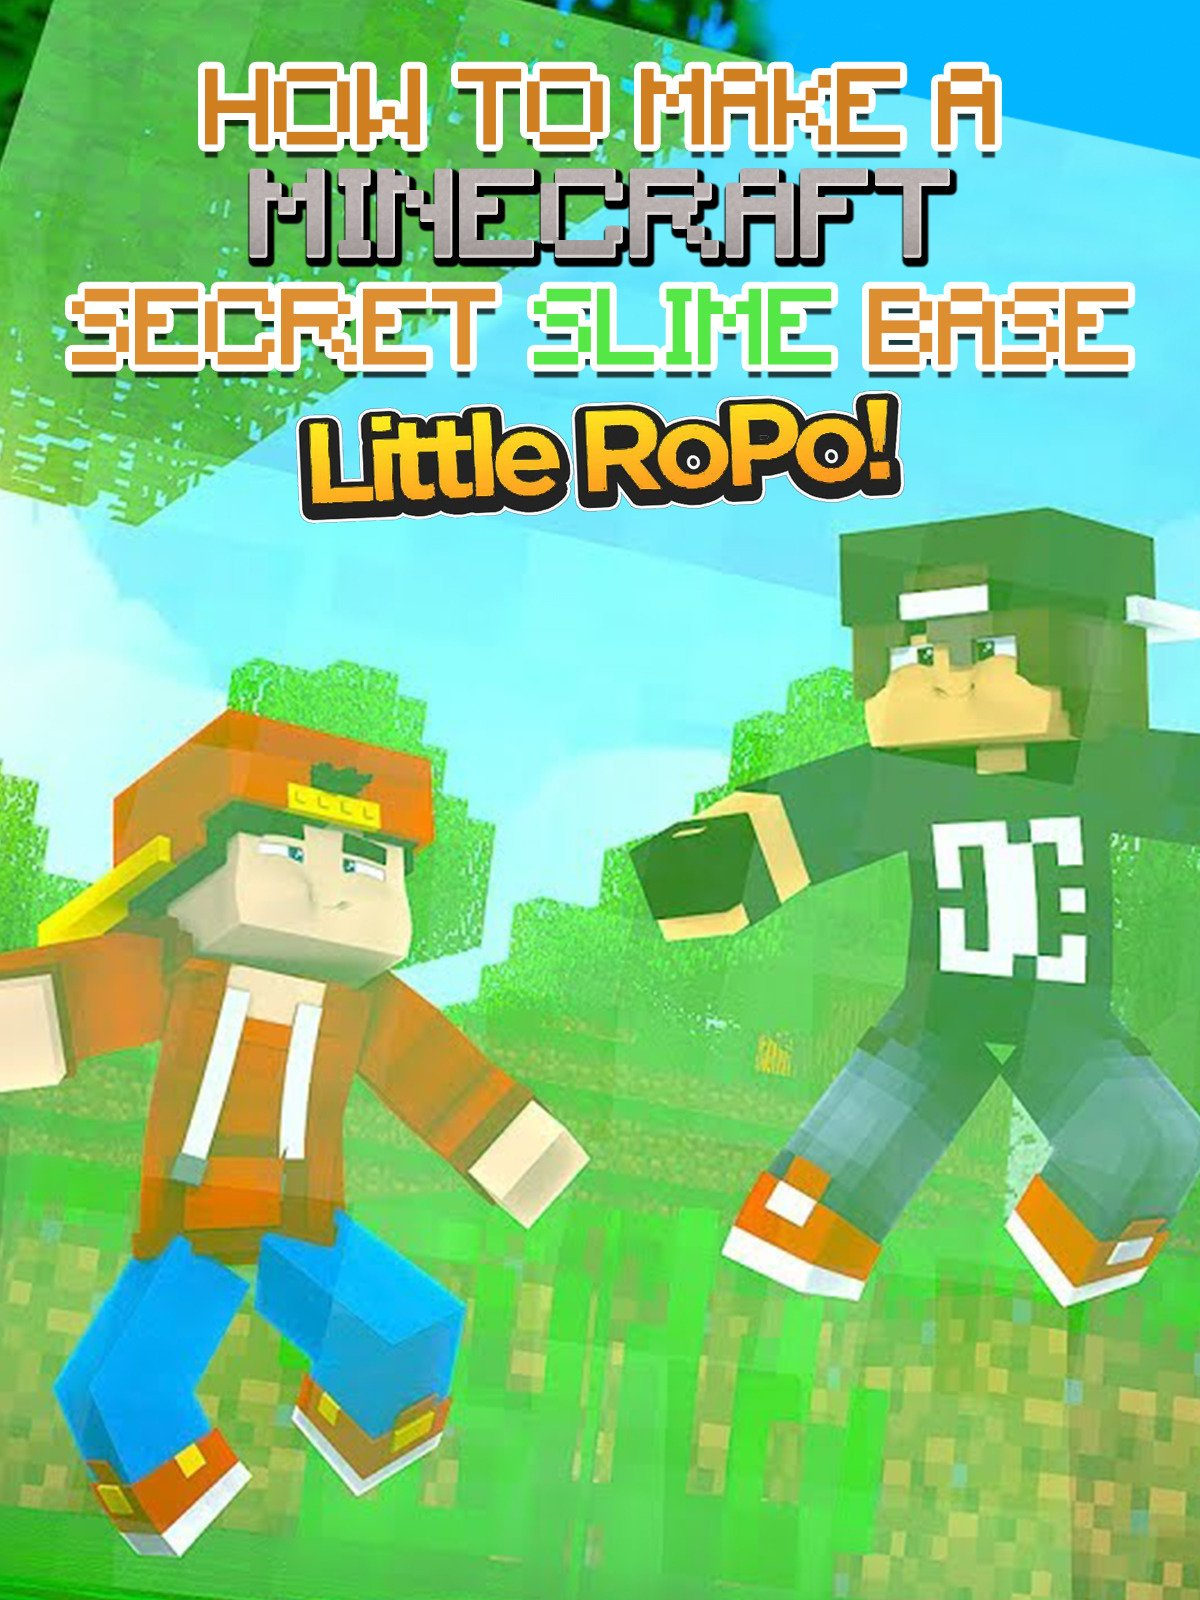 Clip: Little Ropo